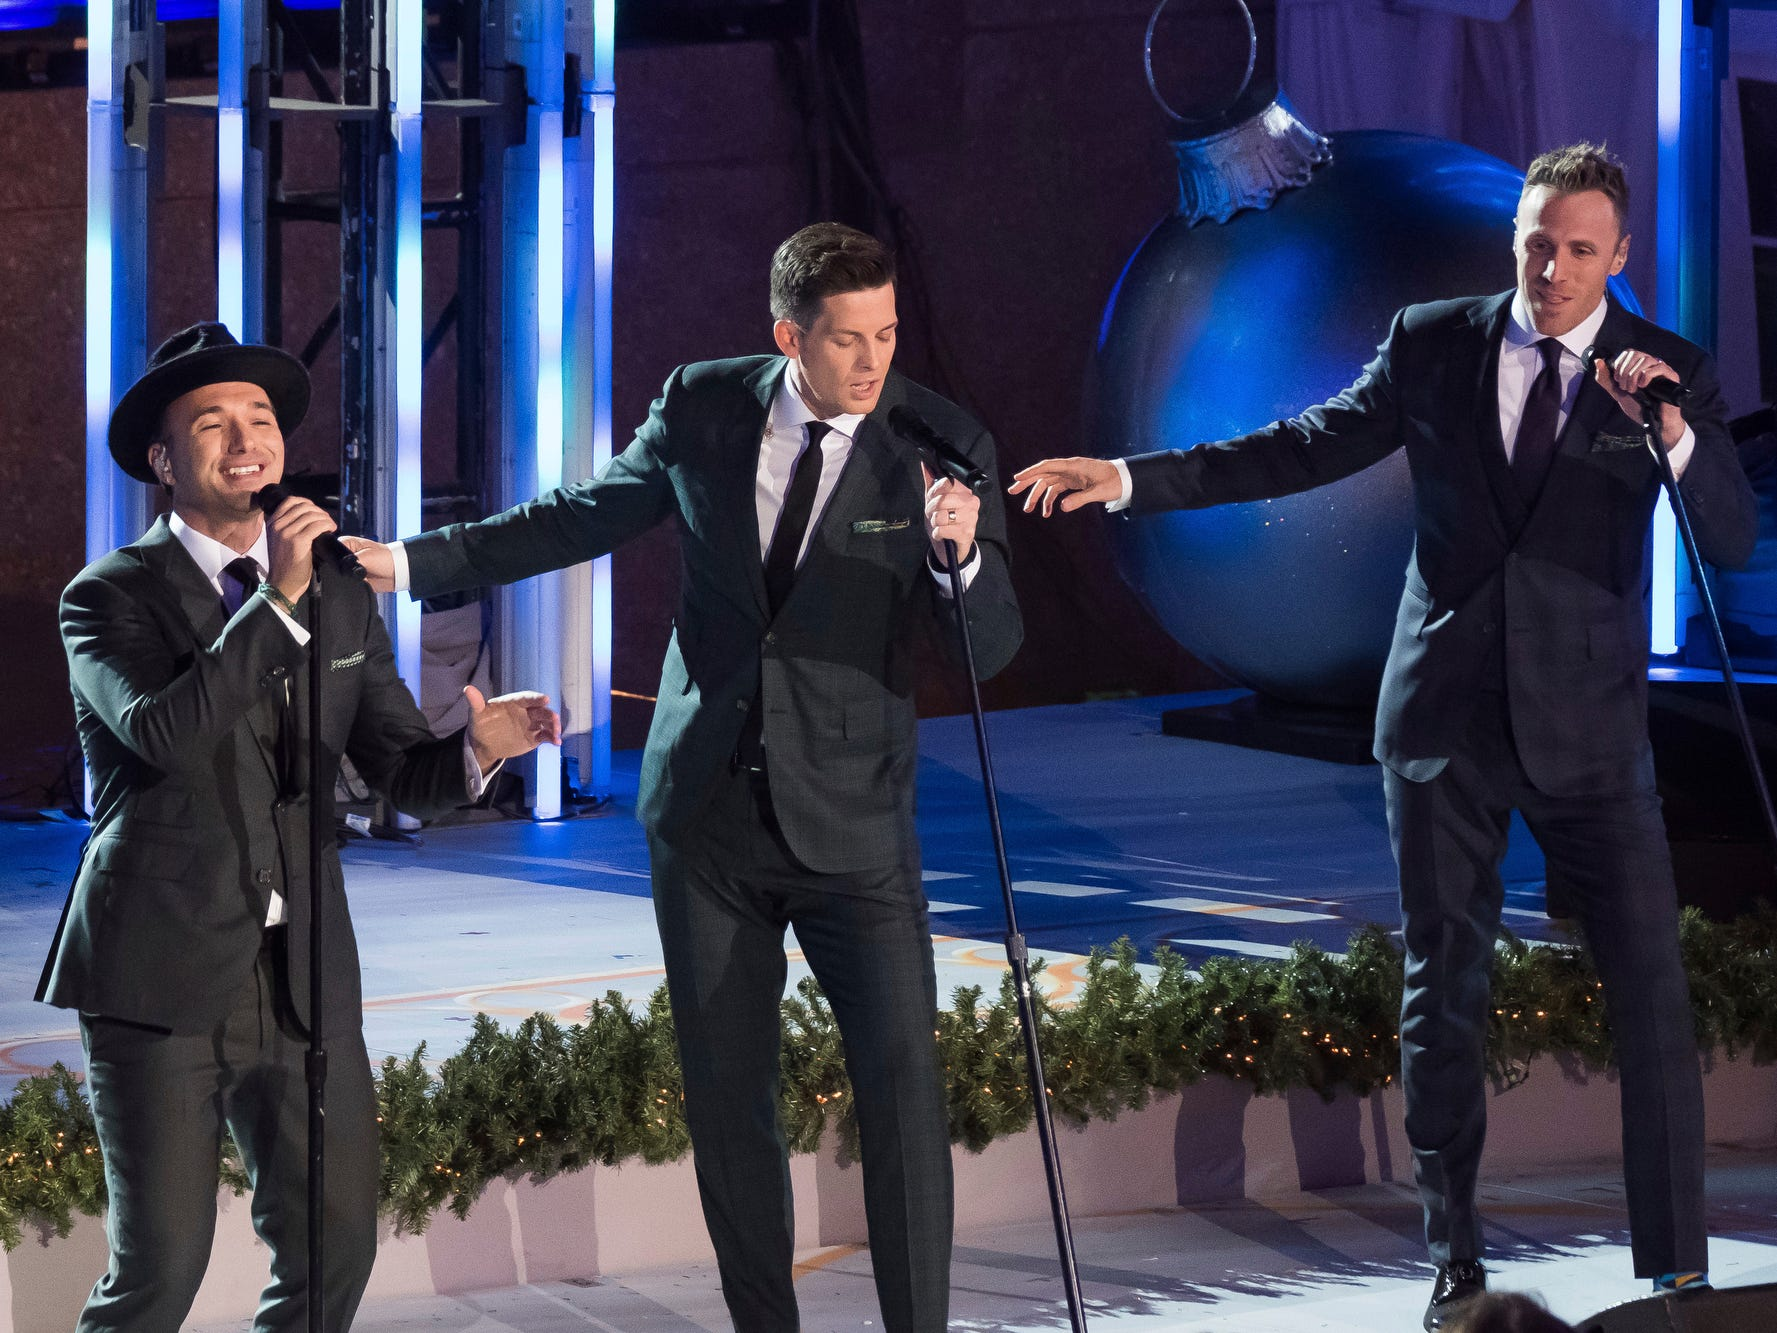 OCT. 29